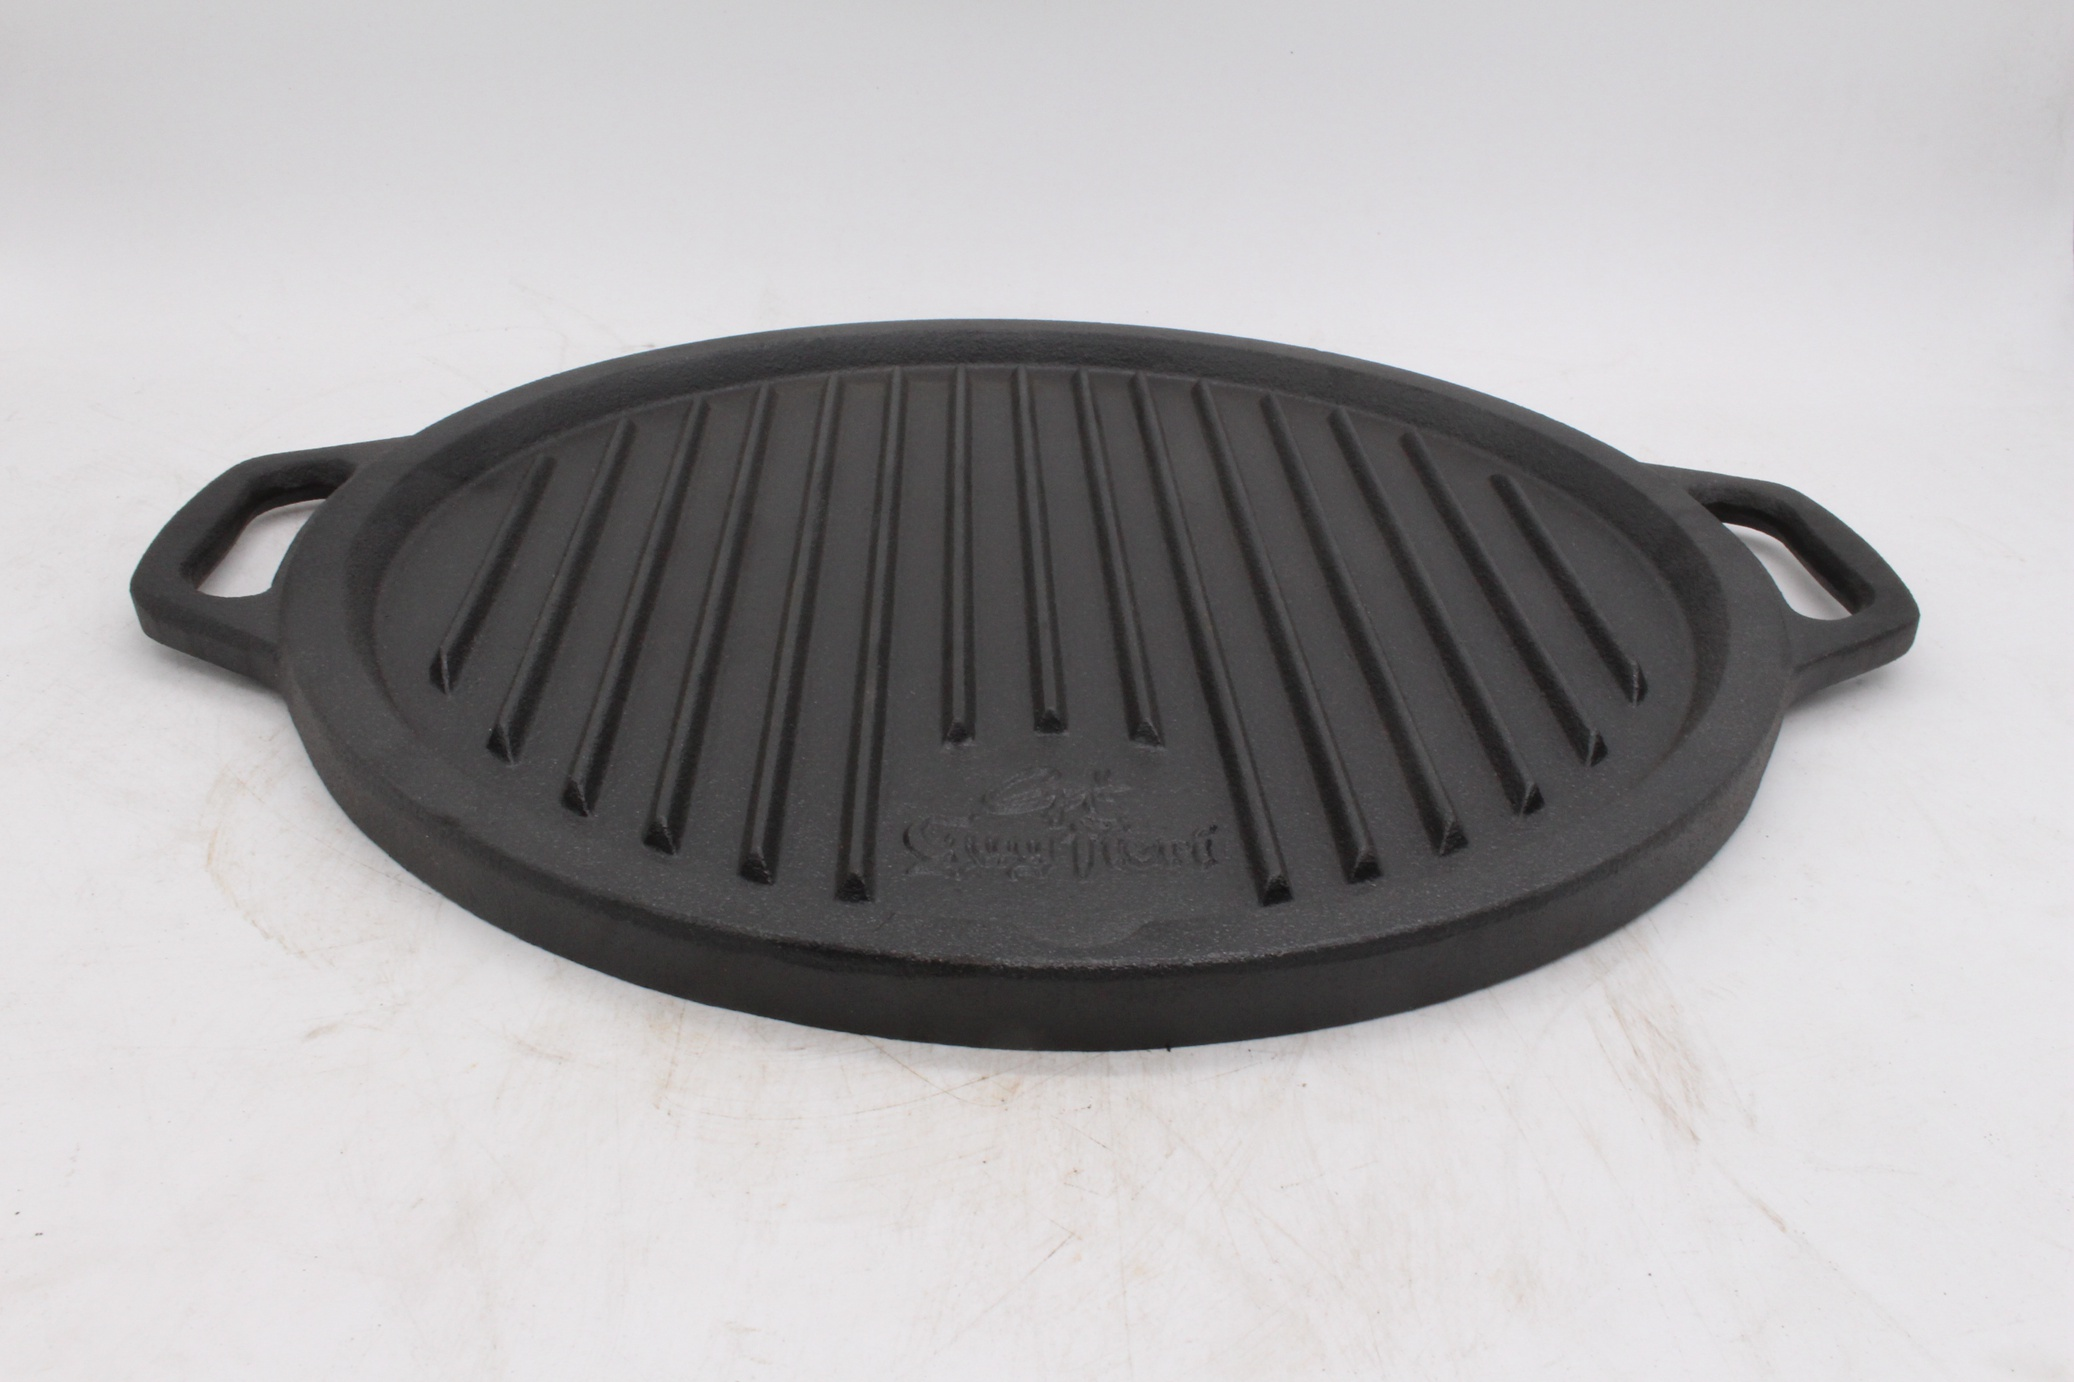 Cast iron round griddle for bbq